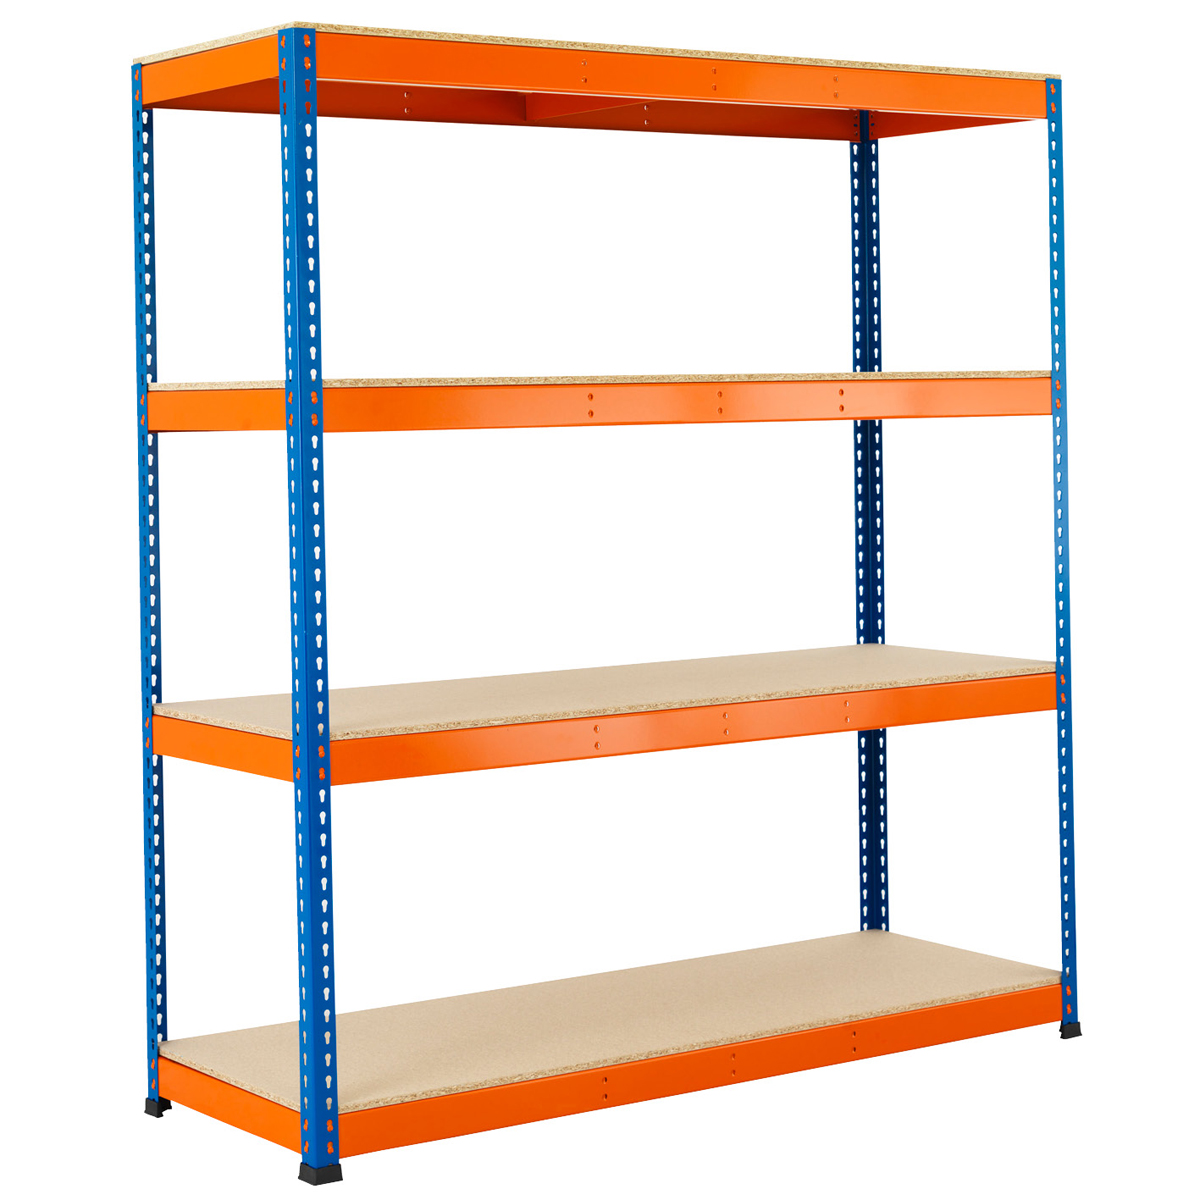 Esmena 1980mm Heavy Duty Warehouse Racking with 4 levels - 400kg UDL Shelving